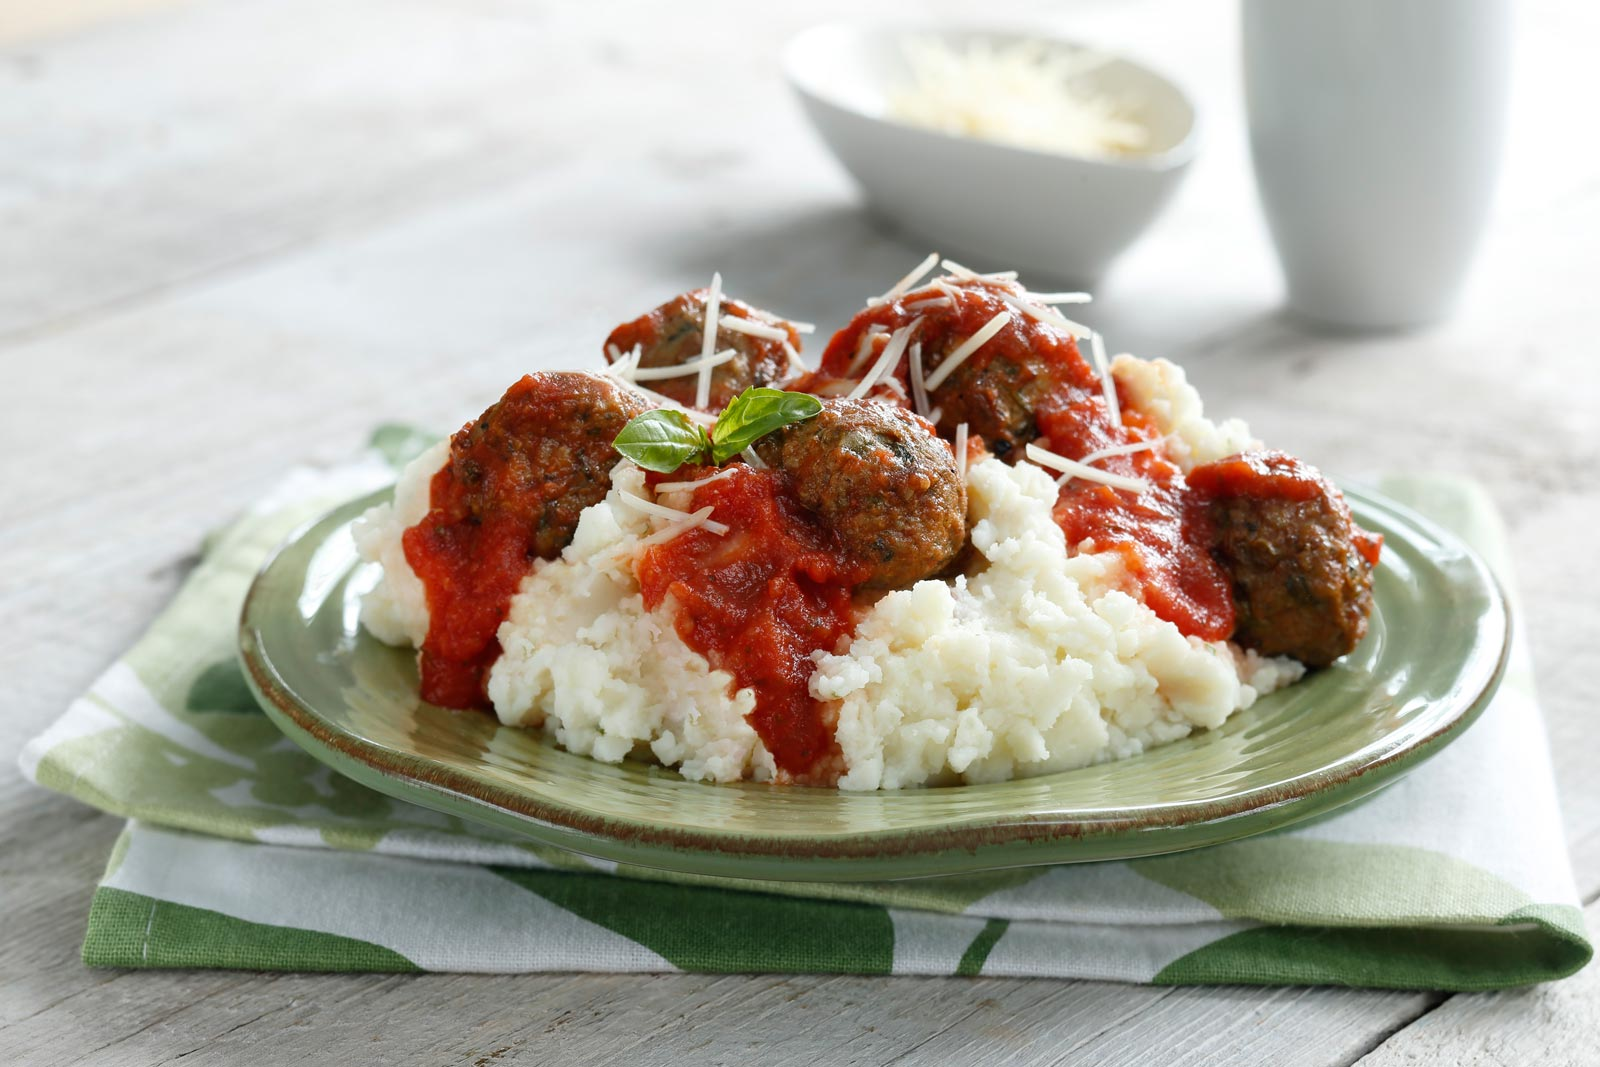 Roasted Garlic Mashed Potatoes with Meatballs and Marinara